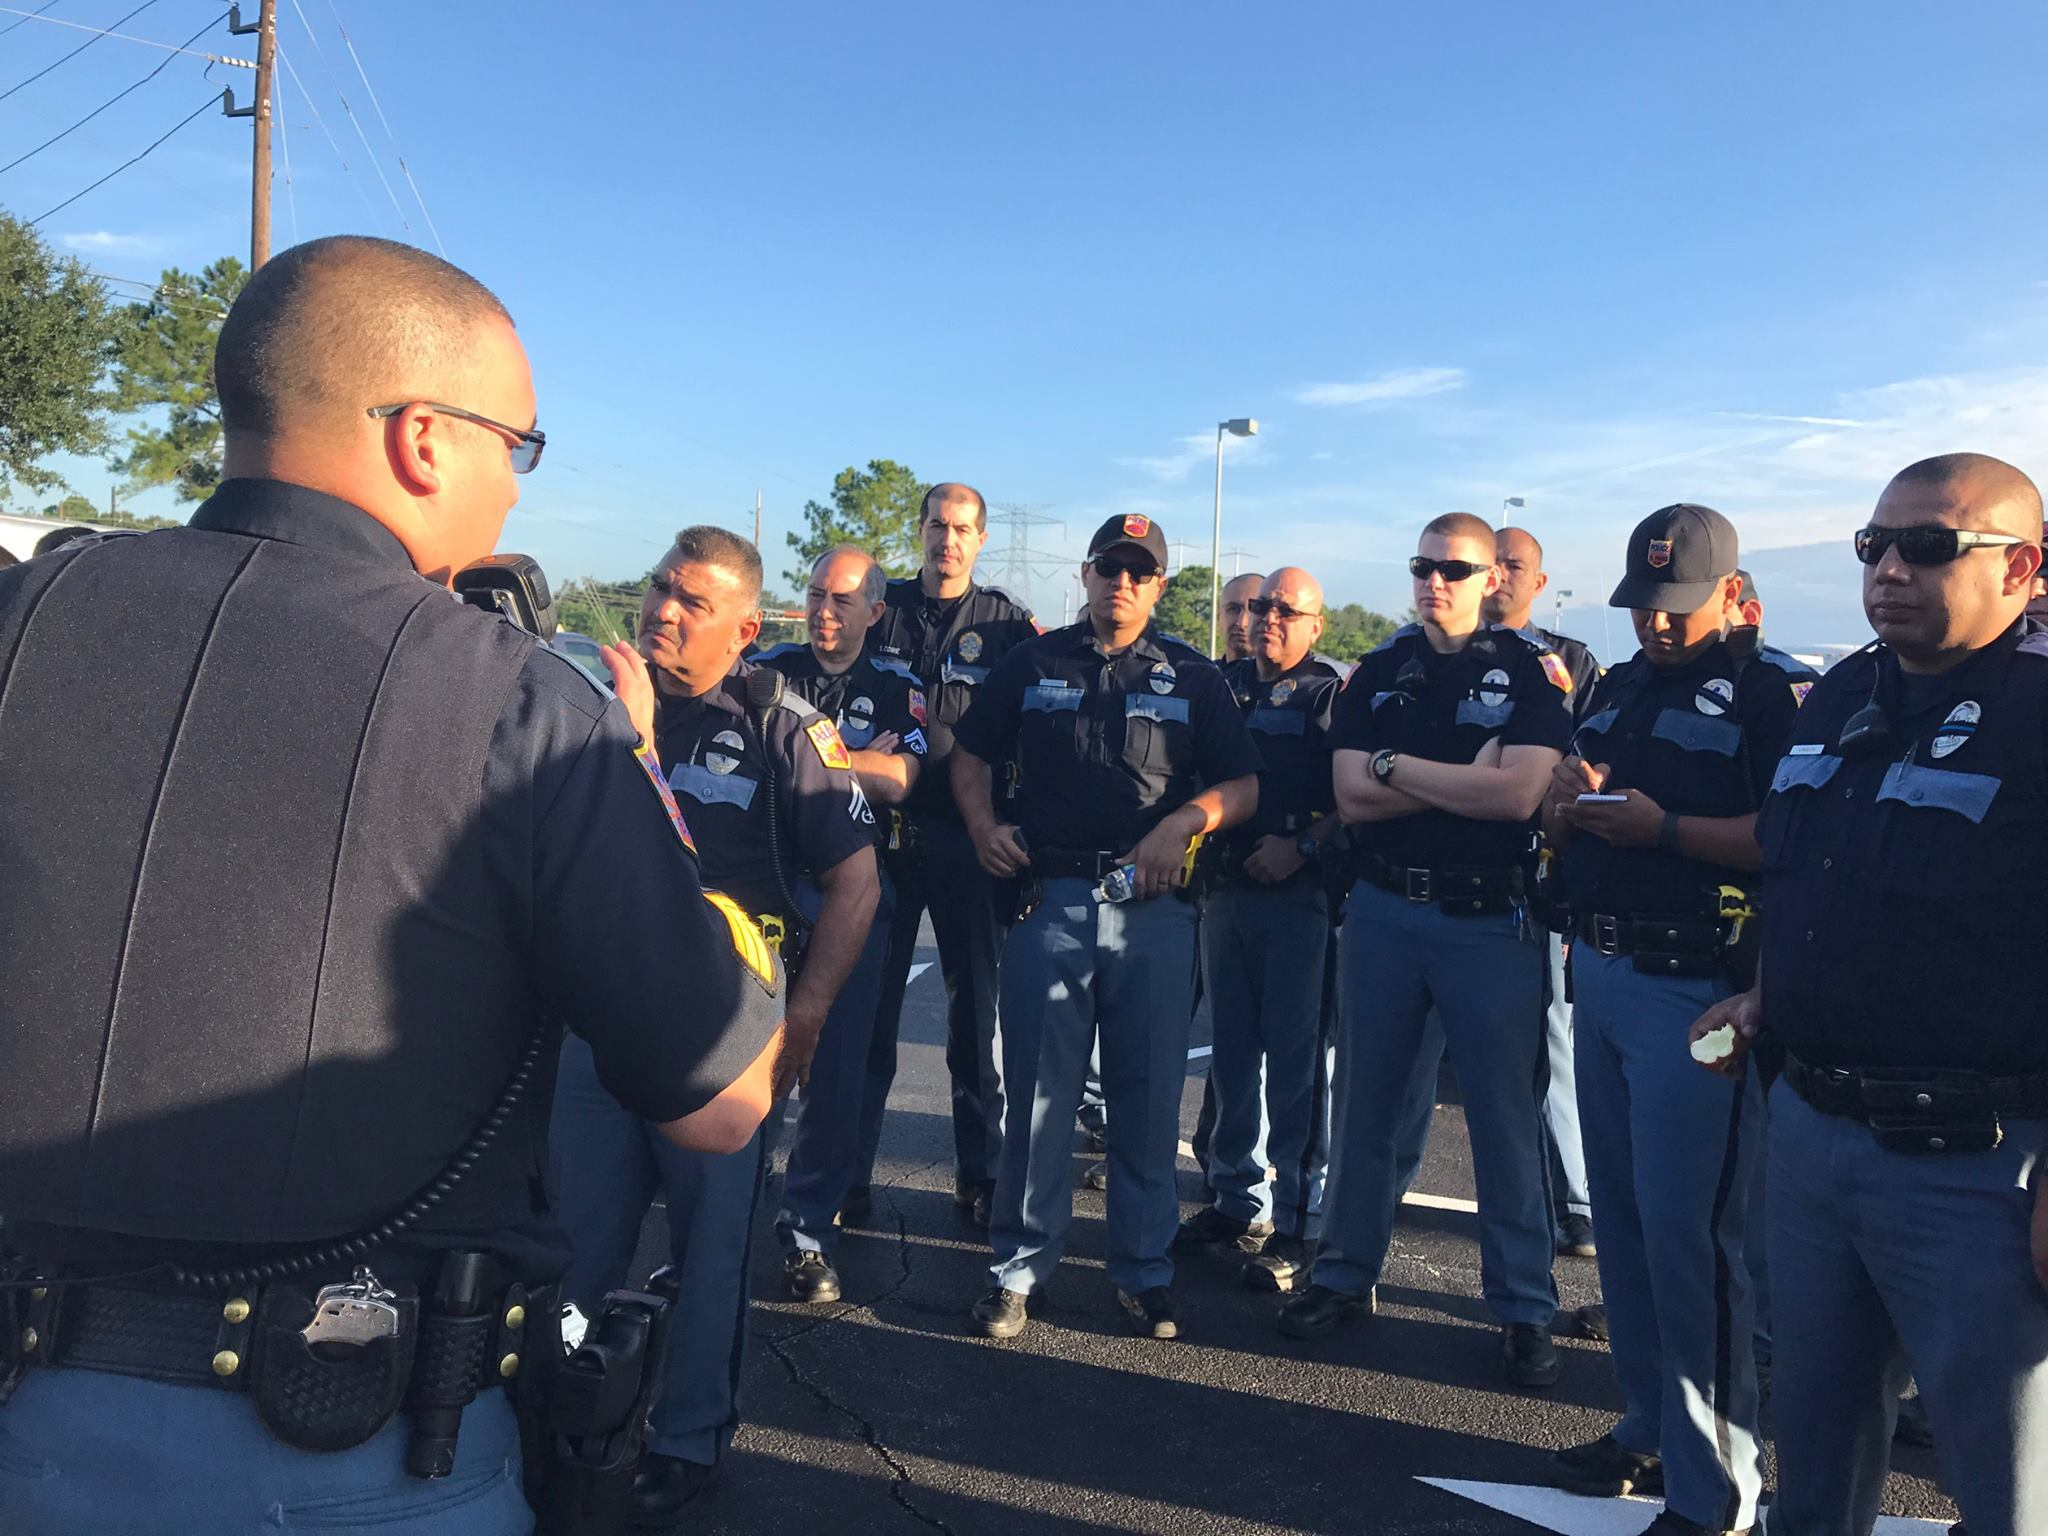 Crews with the El Paso Police Department helping with the Harvey relief effort . Photo courtesy of the City of El Paso.